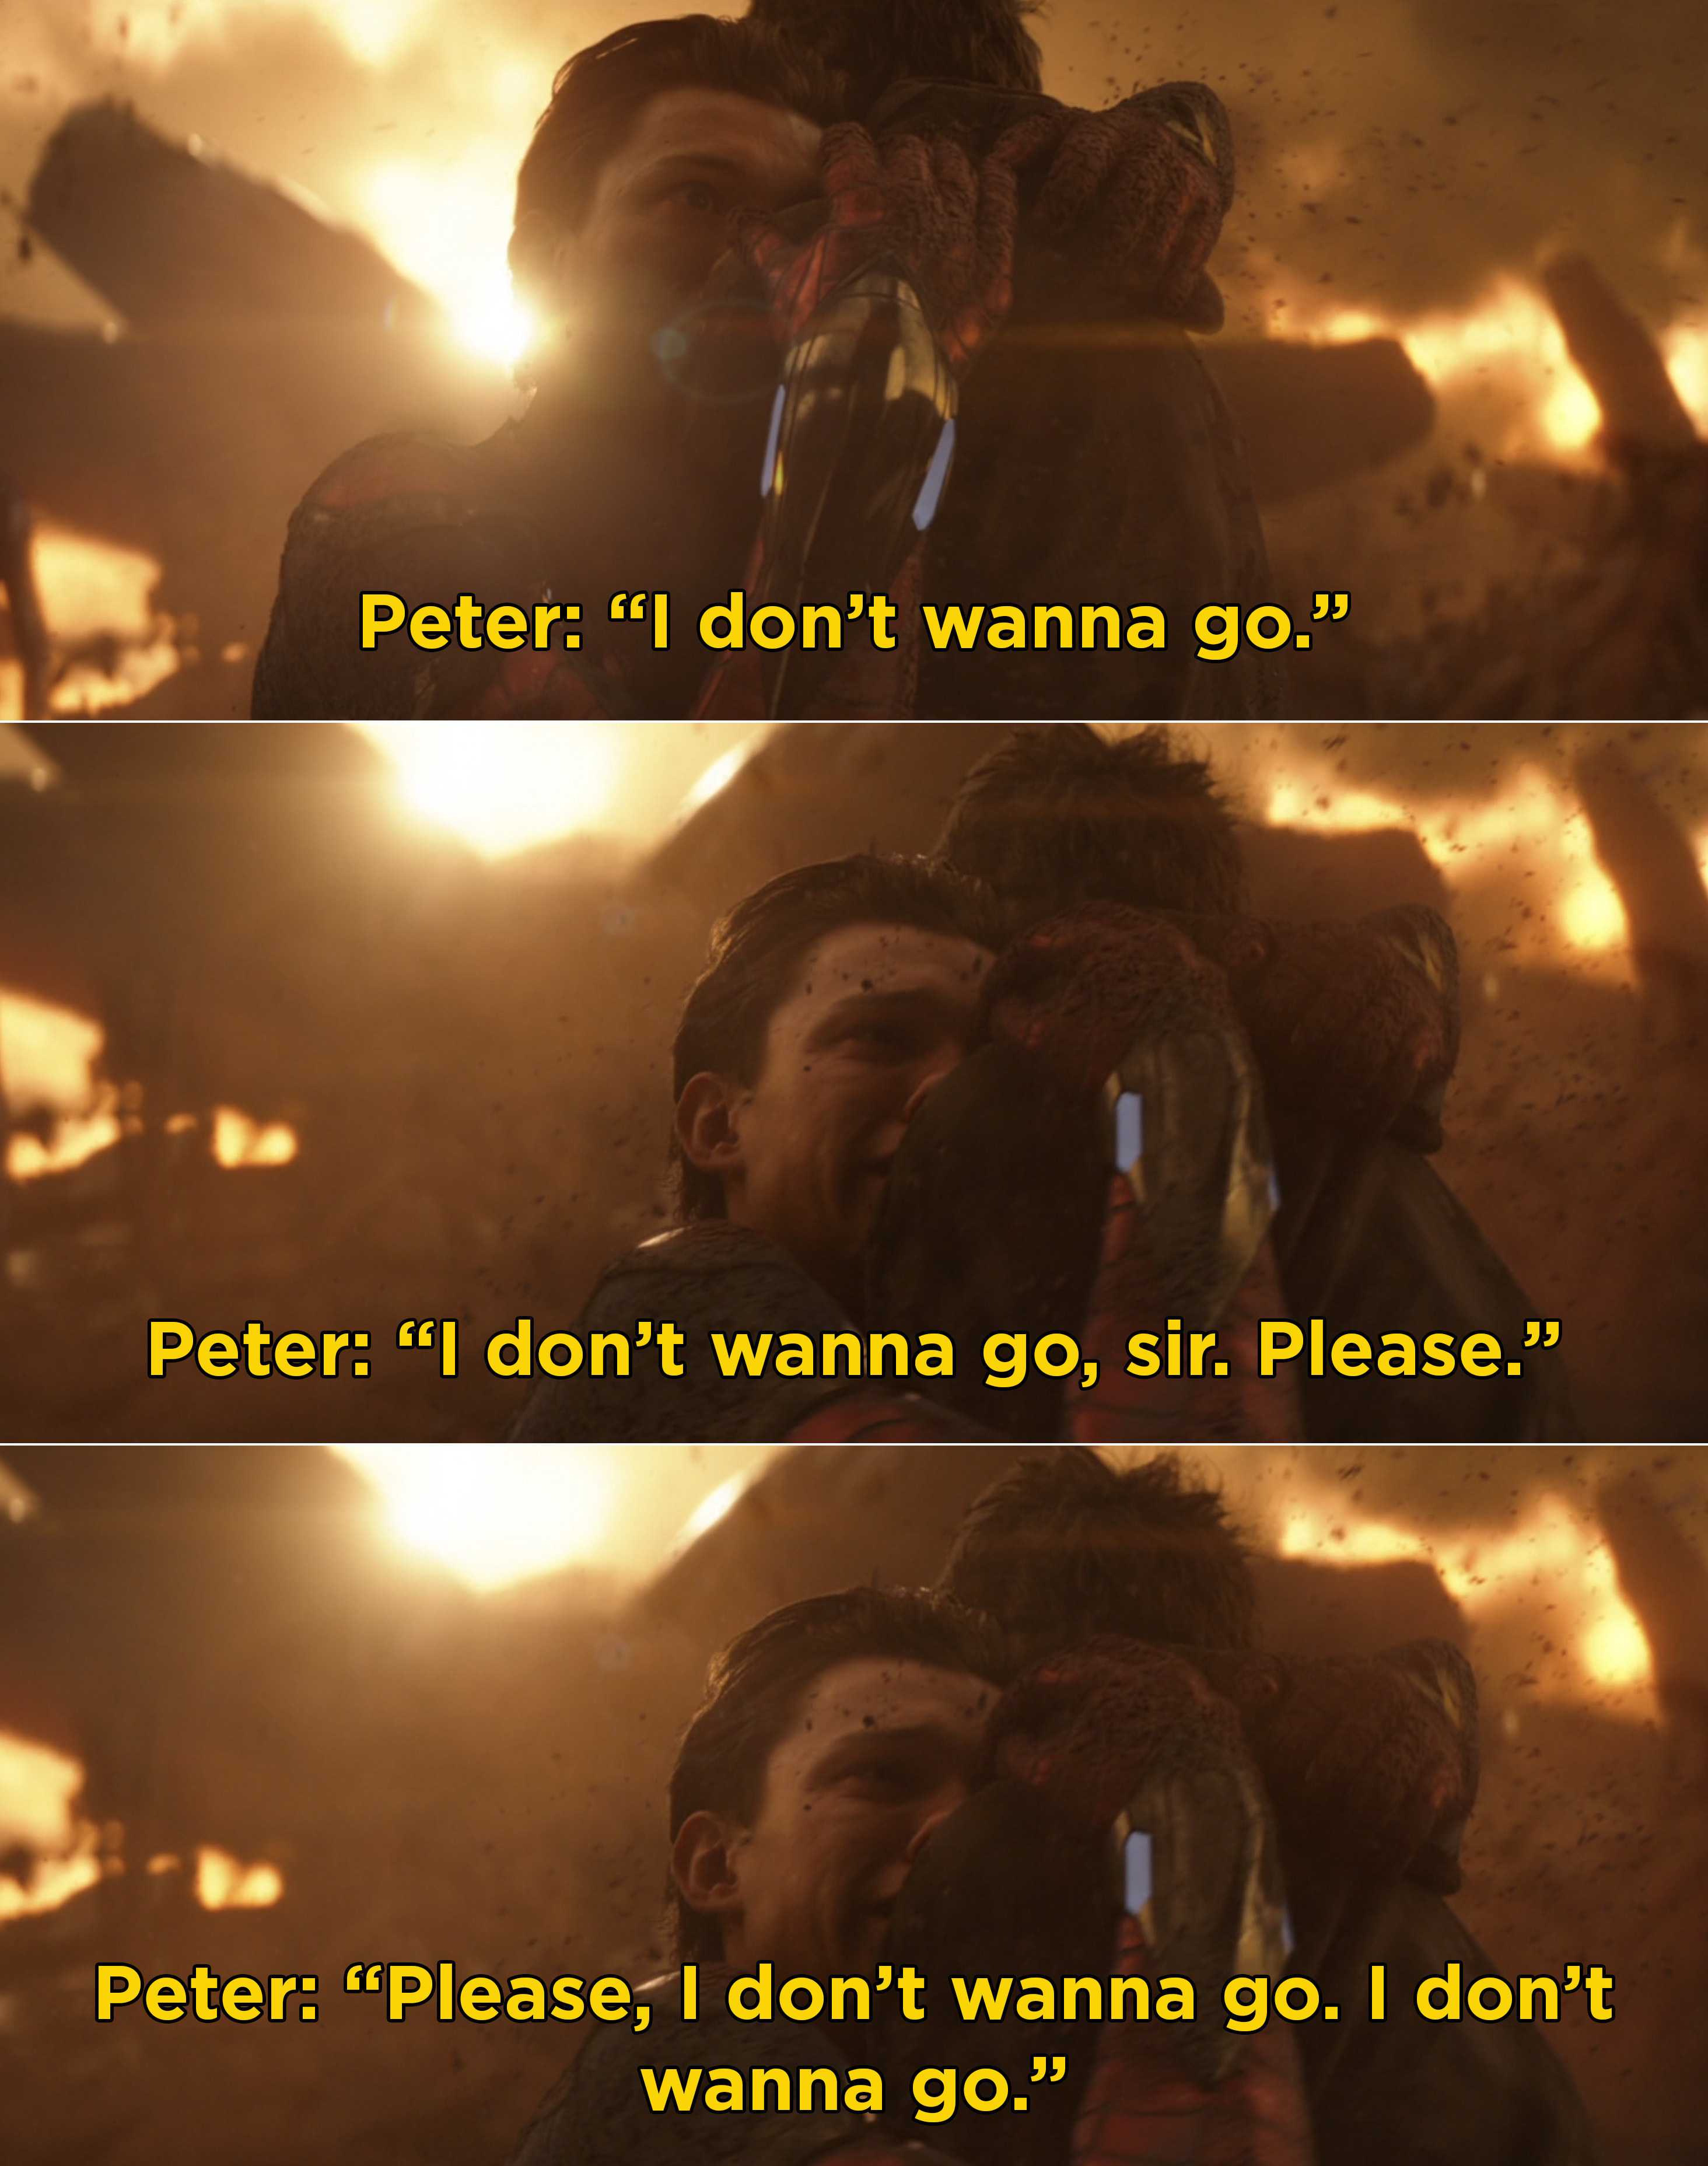 """Peter clinging to Tony and saying, """"I don't wanna go. I don't wanna go, sir. Please. Please, I don't wanna go. I don't wanna go"""""""